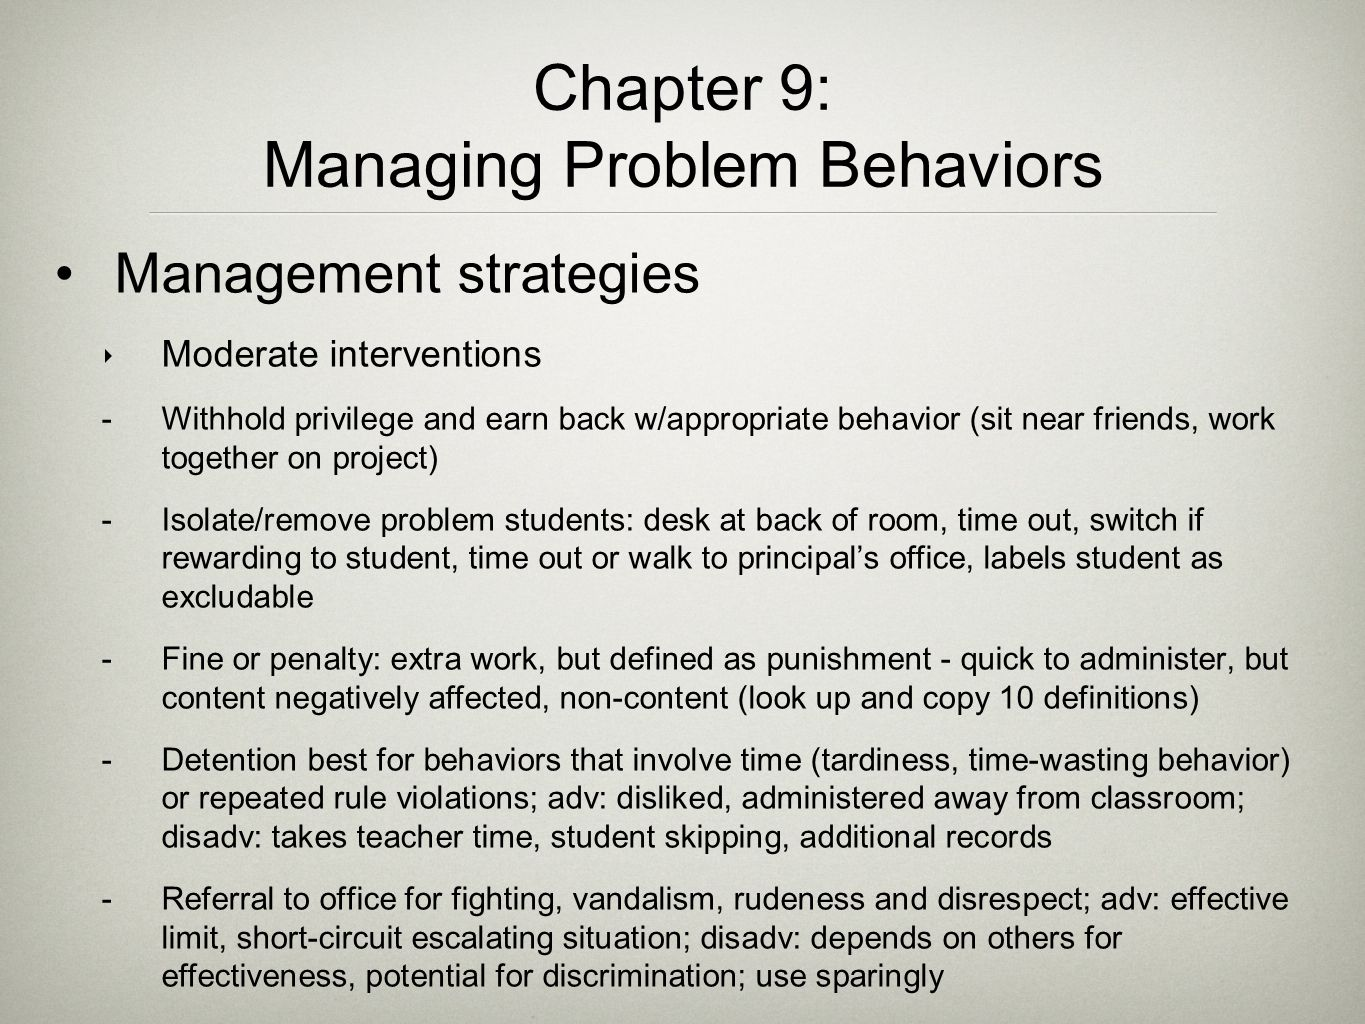 Chapter 9: Managing Problem Behaviors